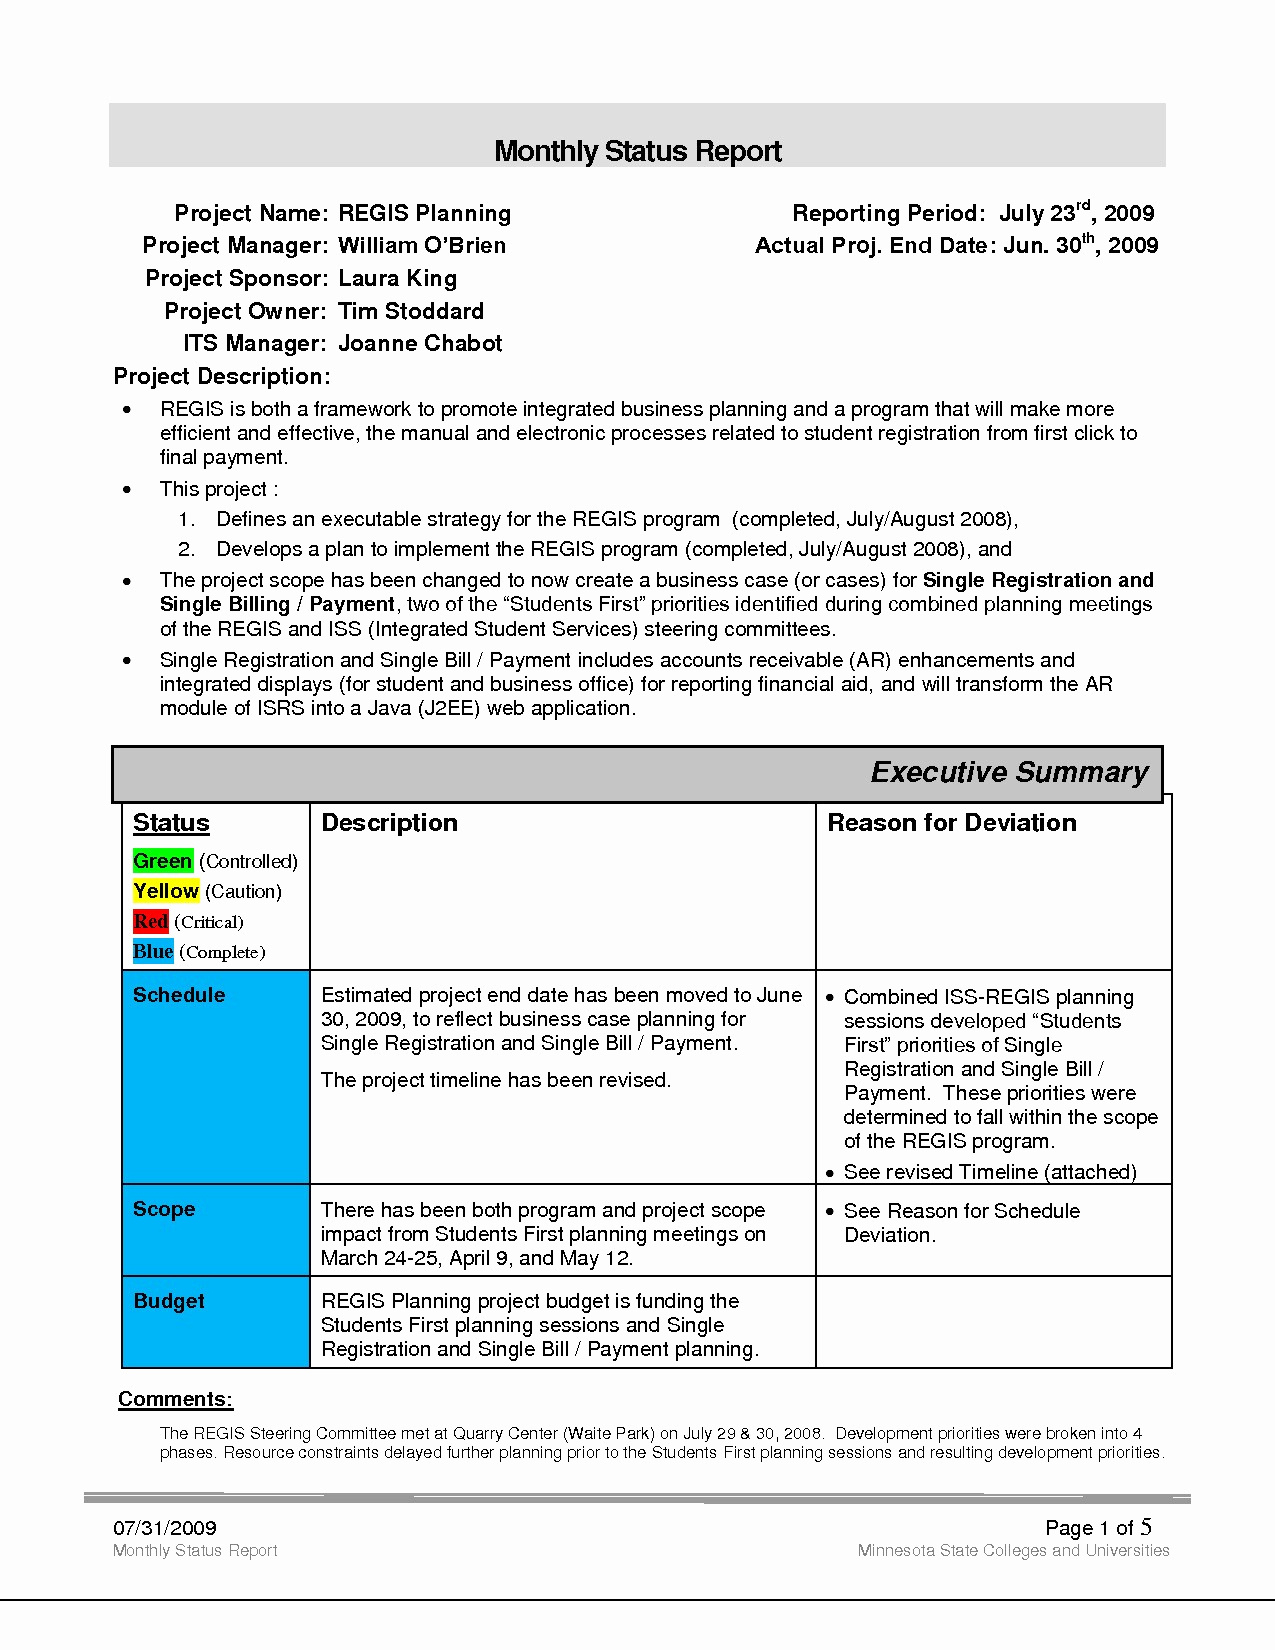 Business Sales Spreadsheet Throughout Sales Report Template Excel Best Of Business Sales Spreadsheet New